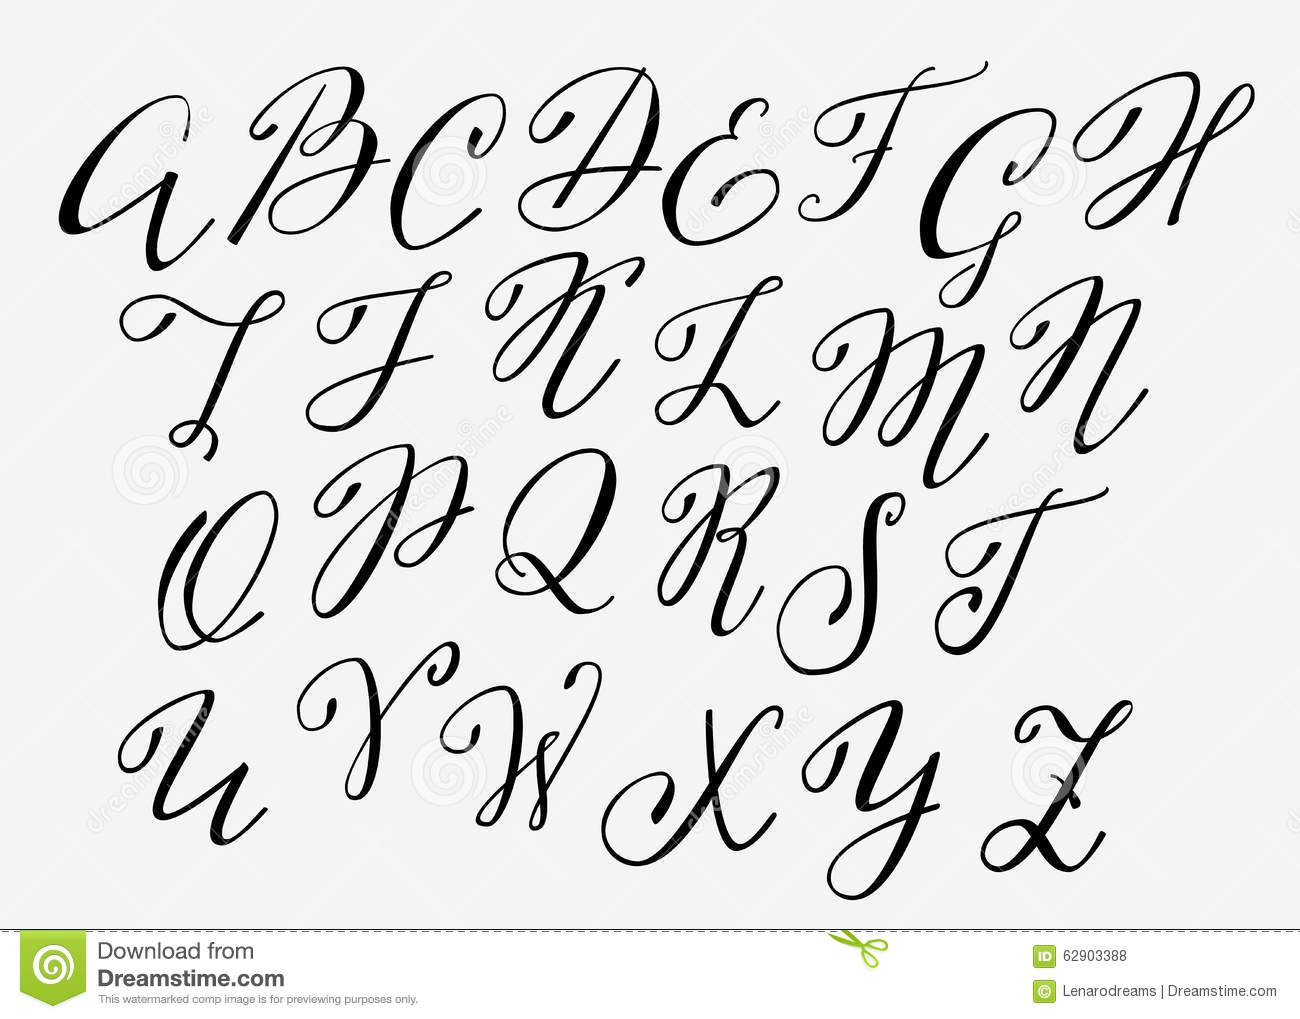 Handwritten calligraphy flourish font stock illustration